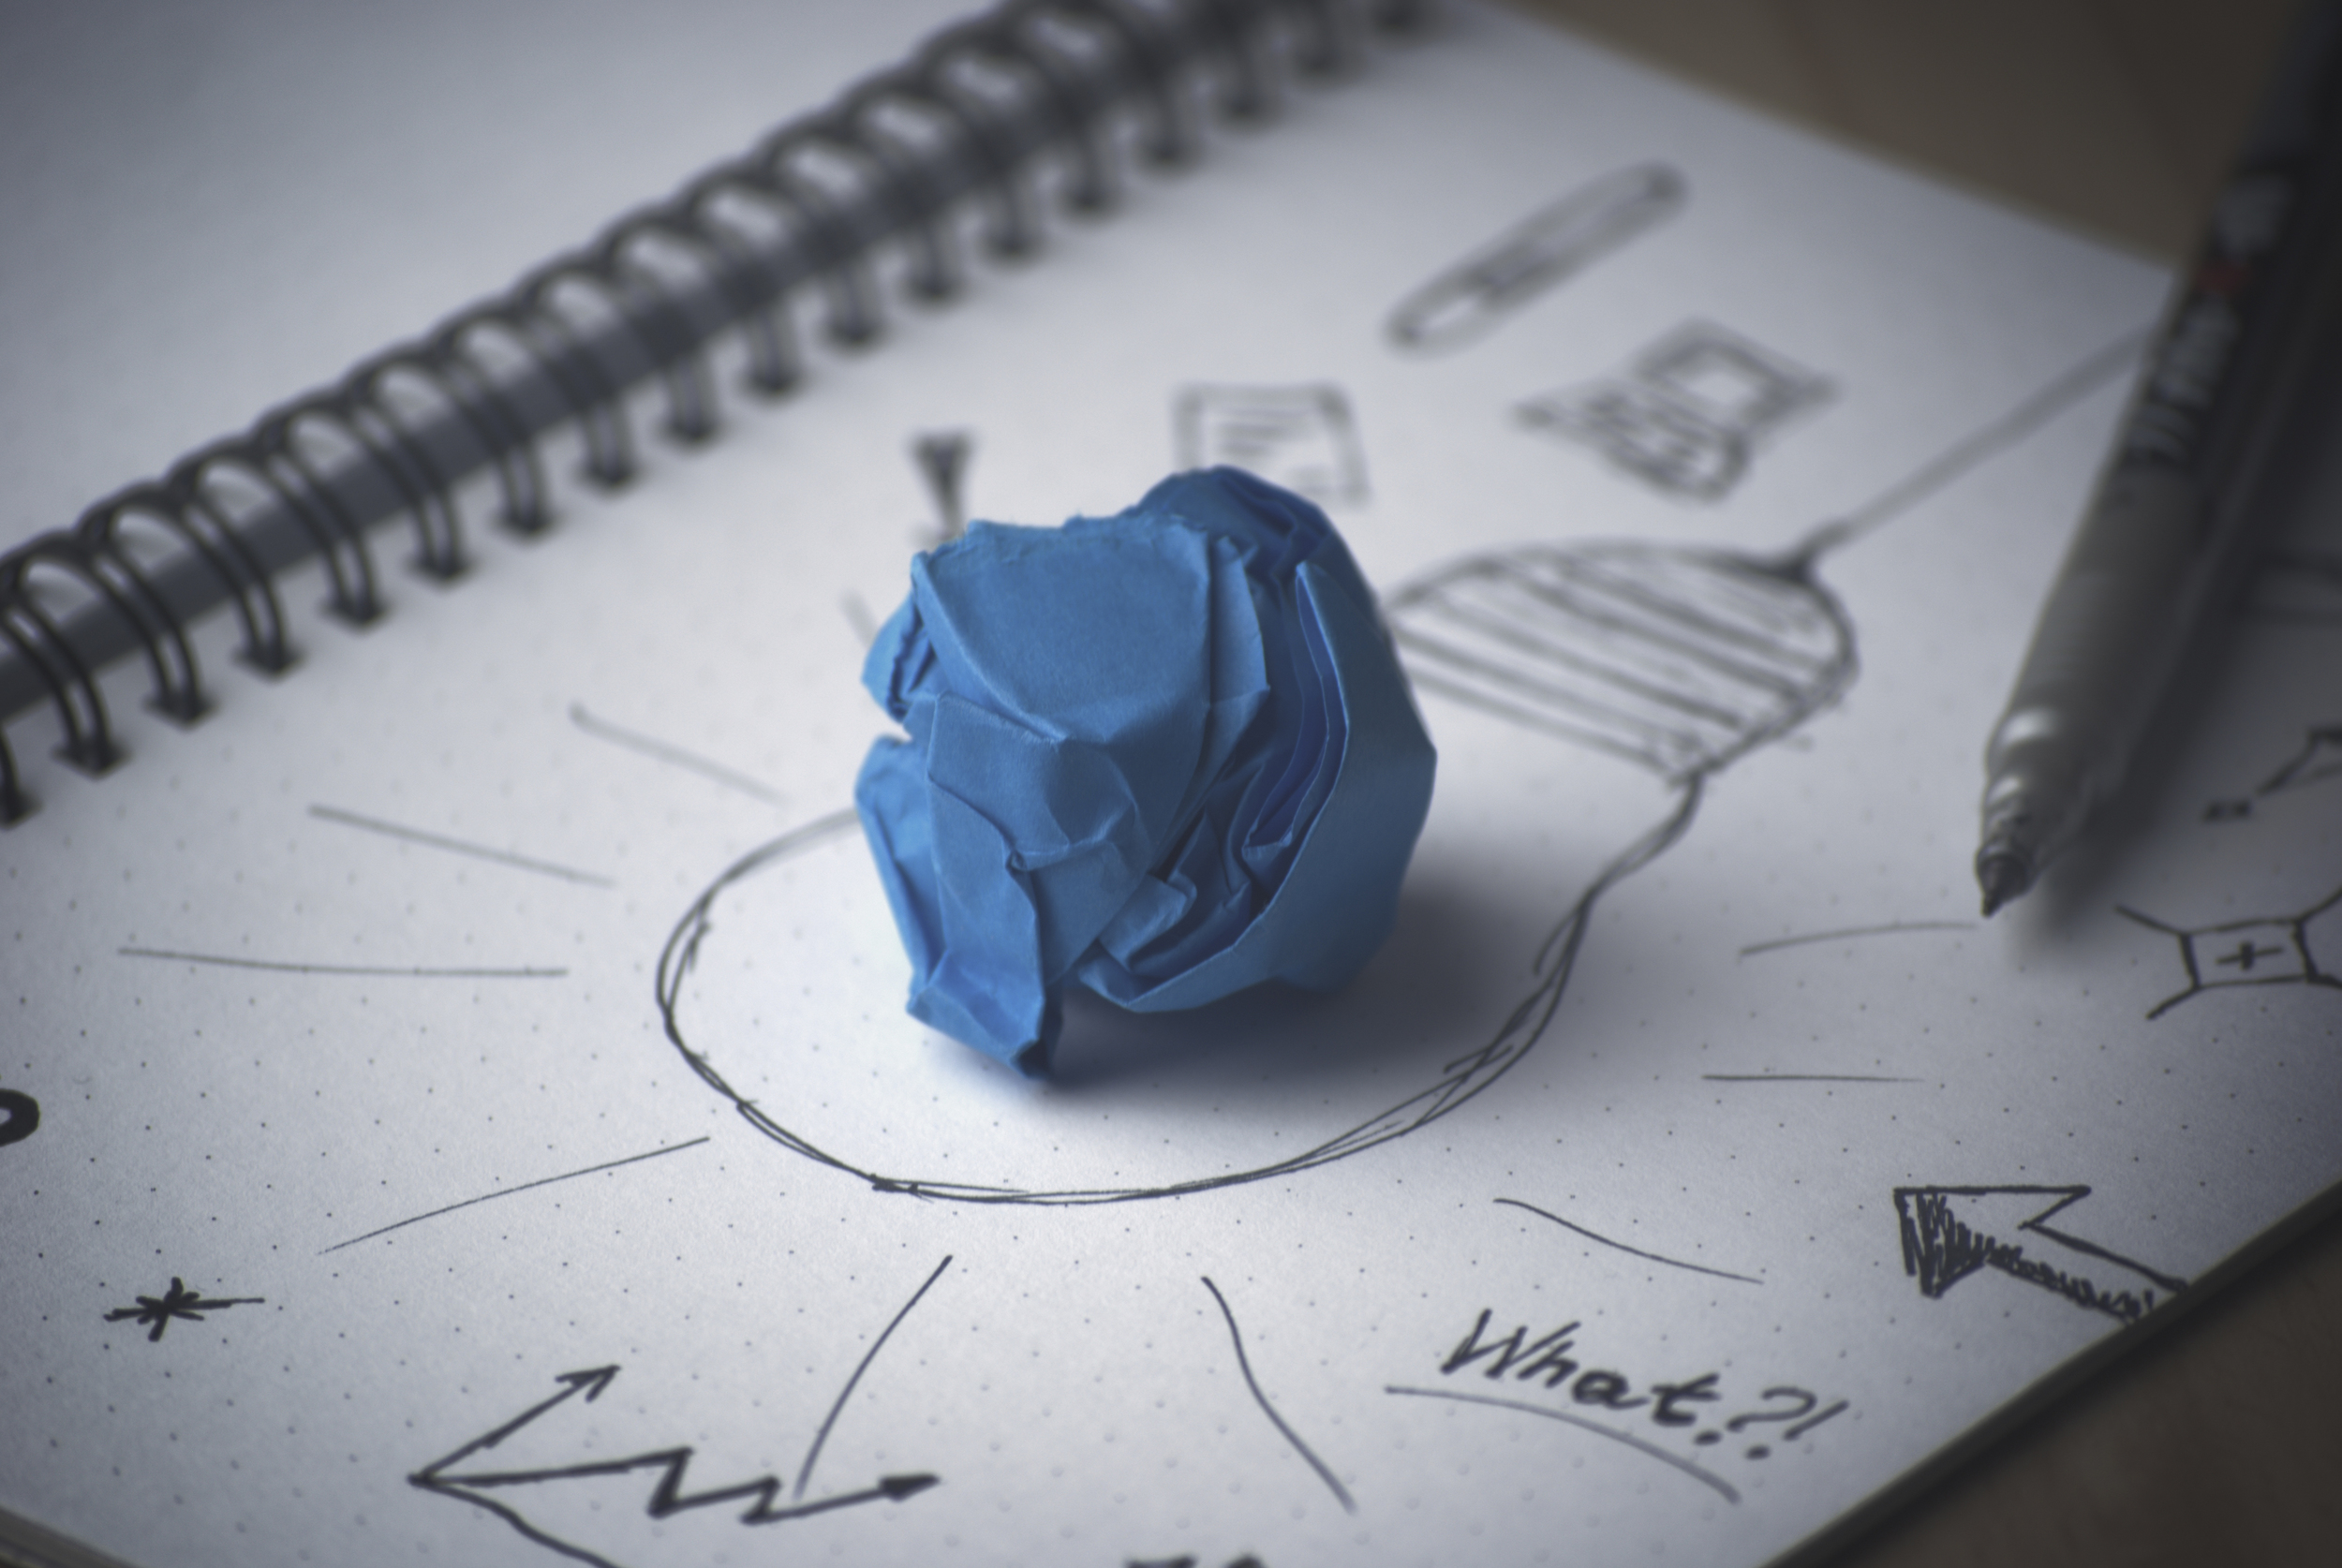 Crumpled paper ball on drawing of lightbulb